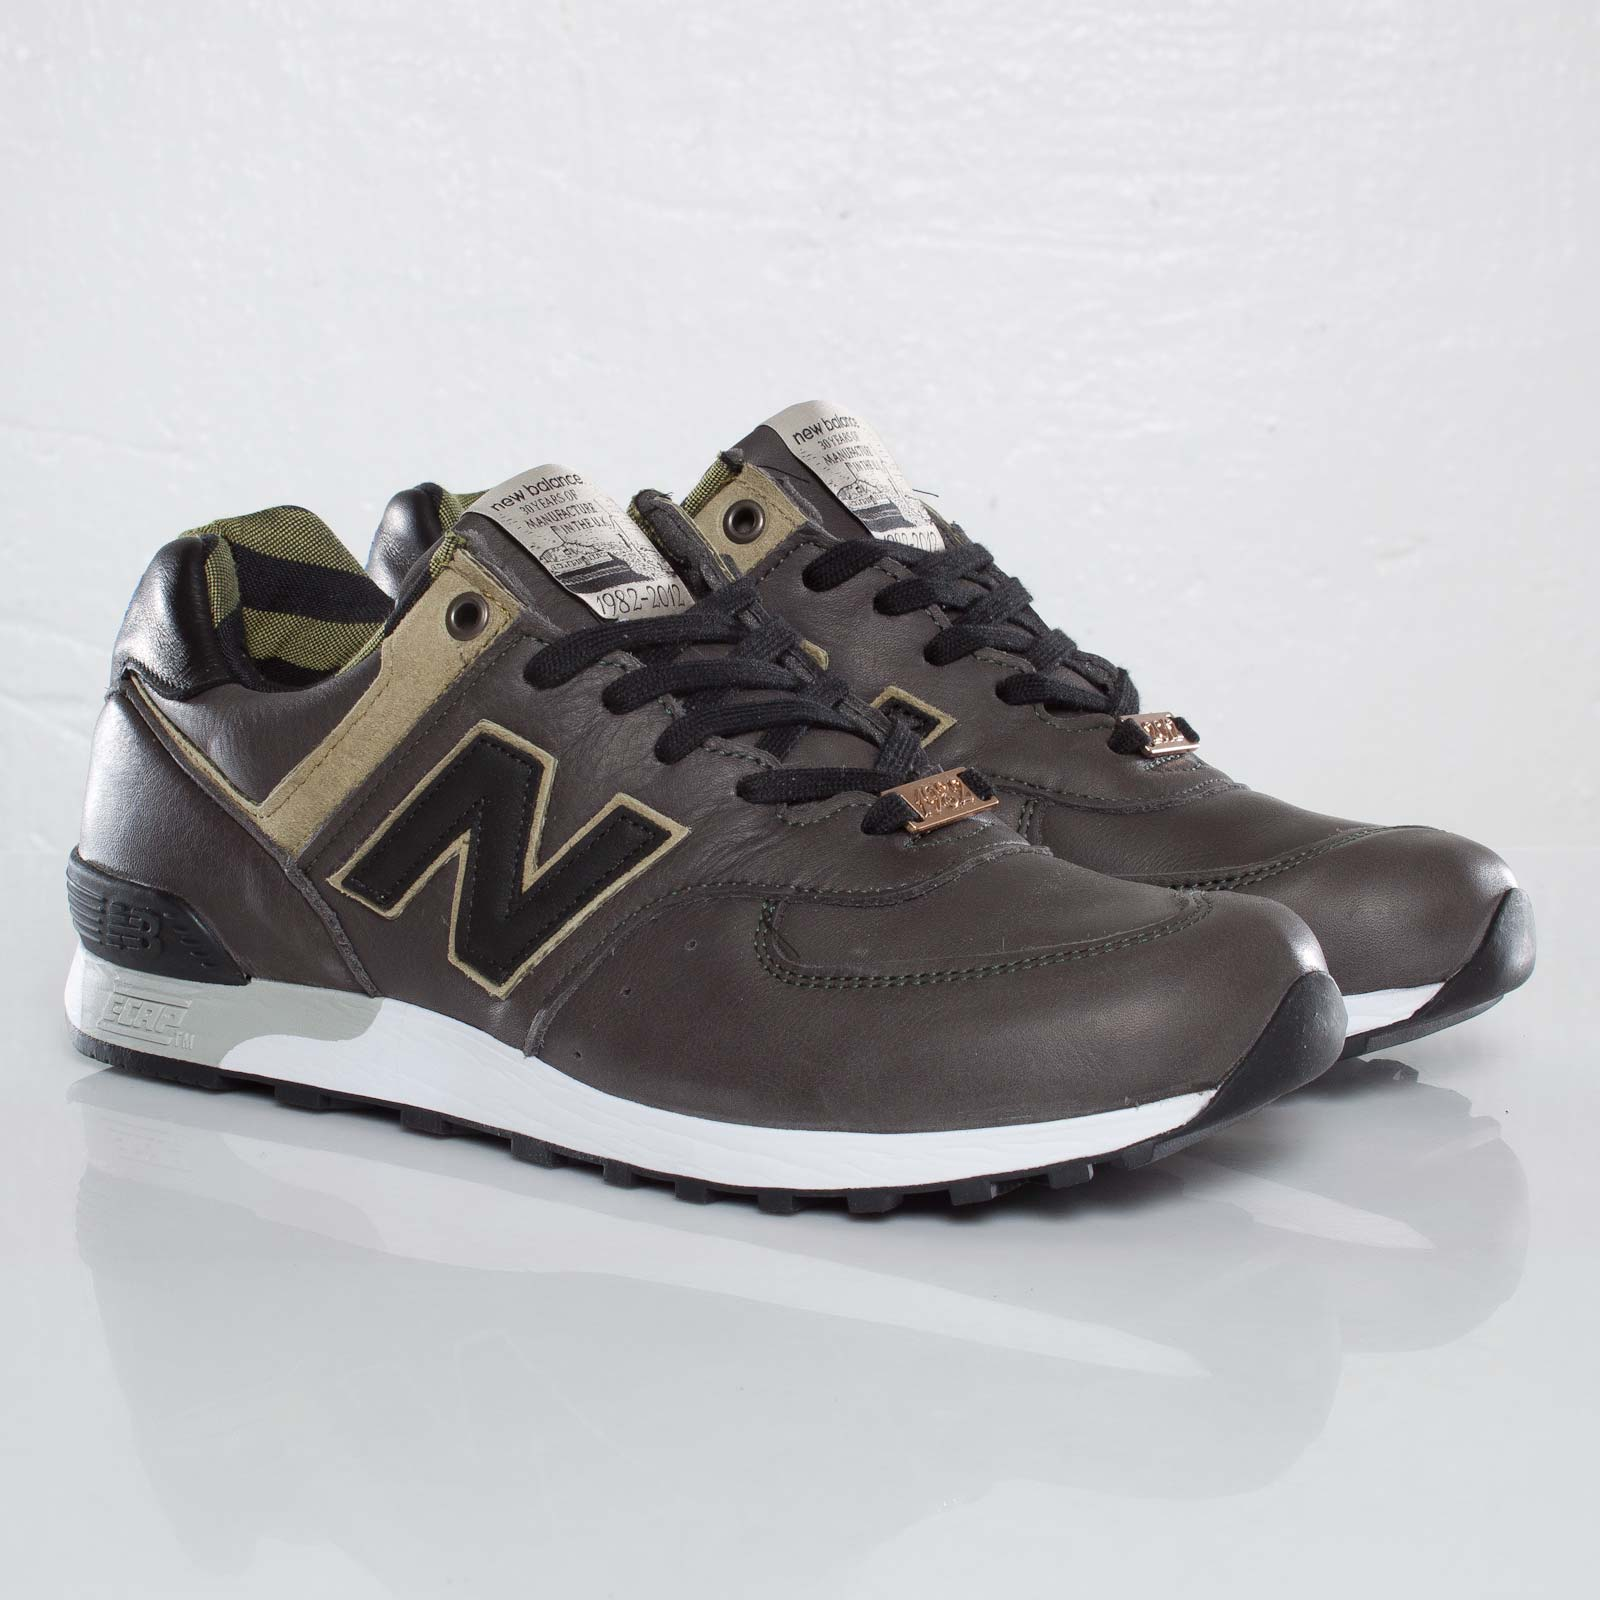 new style ad10c 036c5 New Balance M576 - M576bet - Sneakersnstuff   sneakers ...